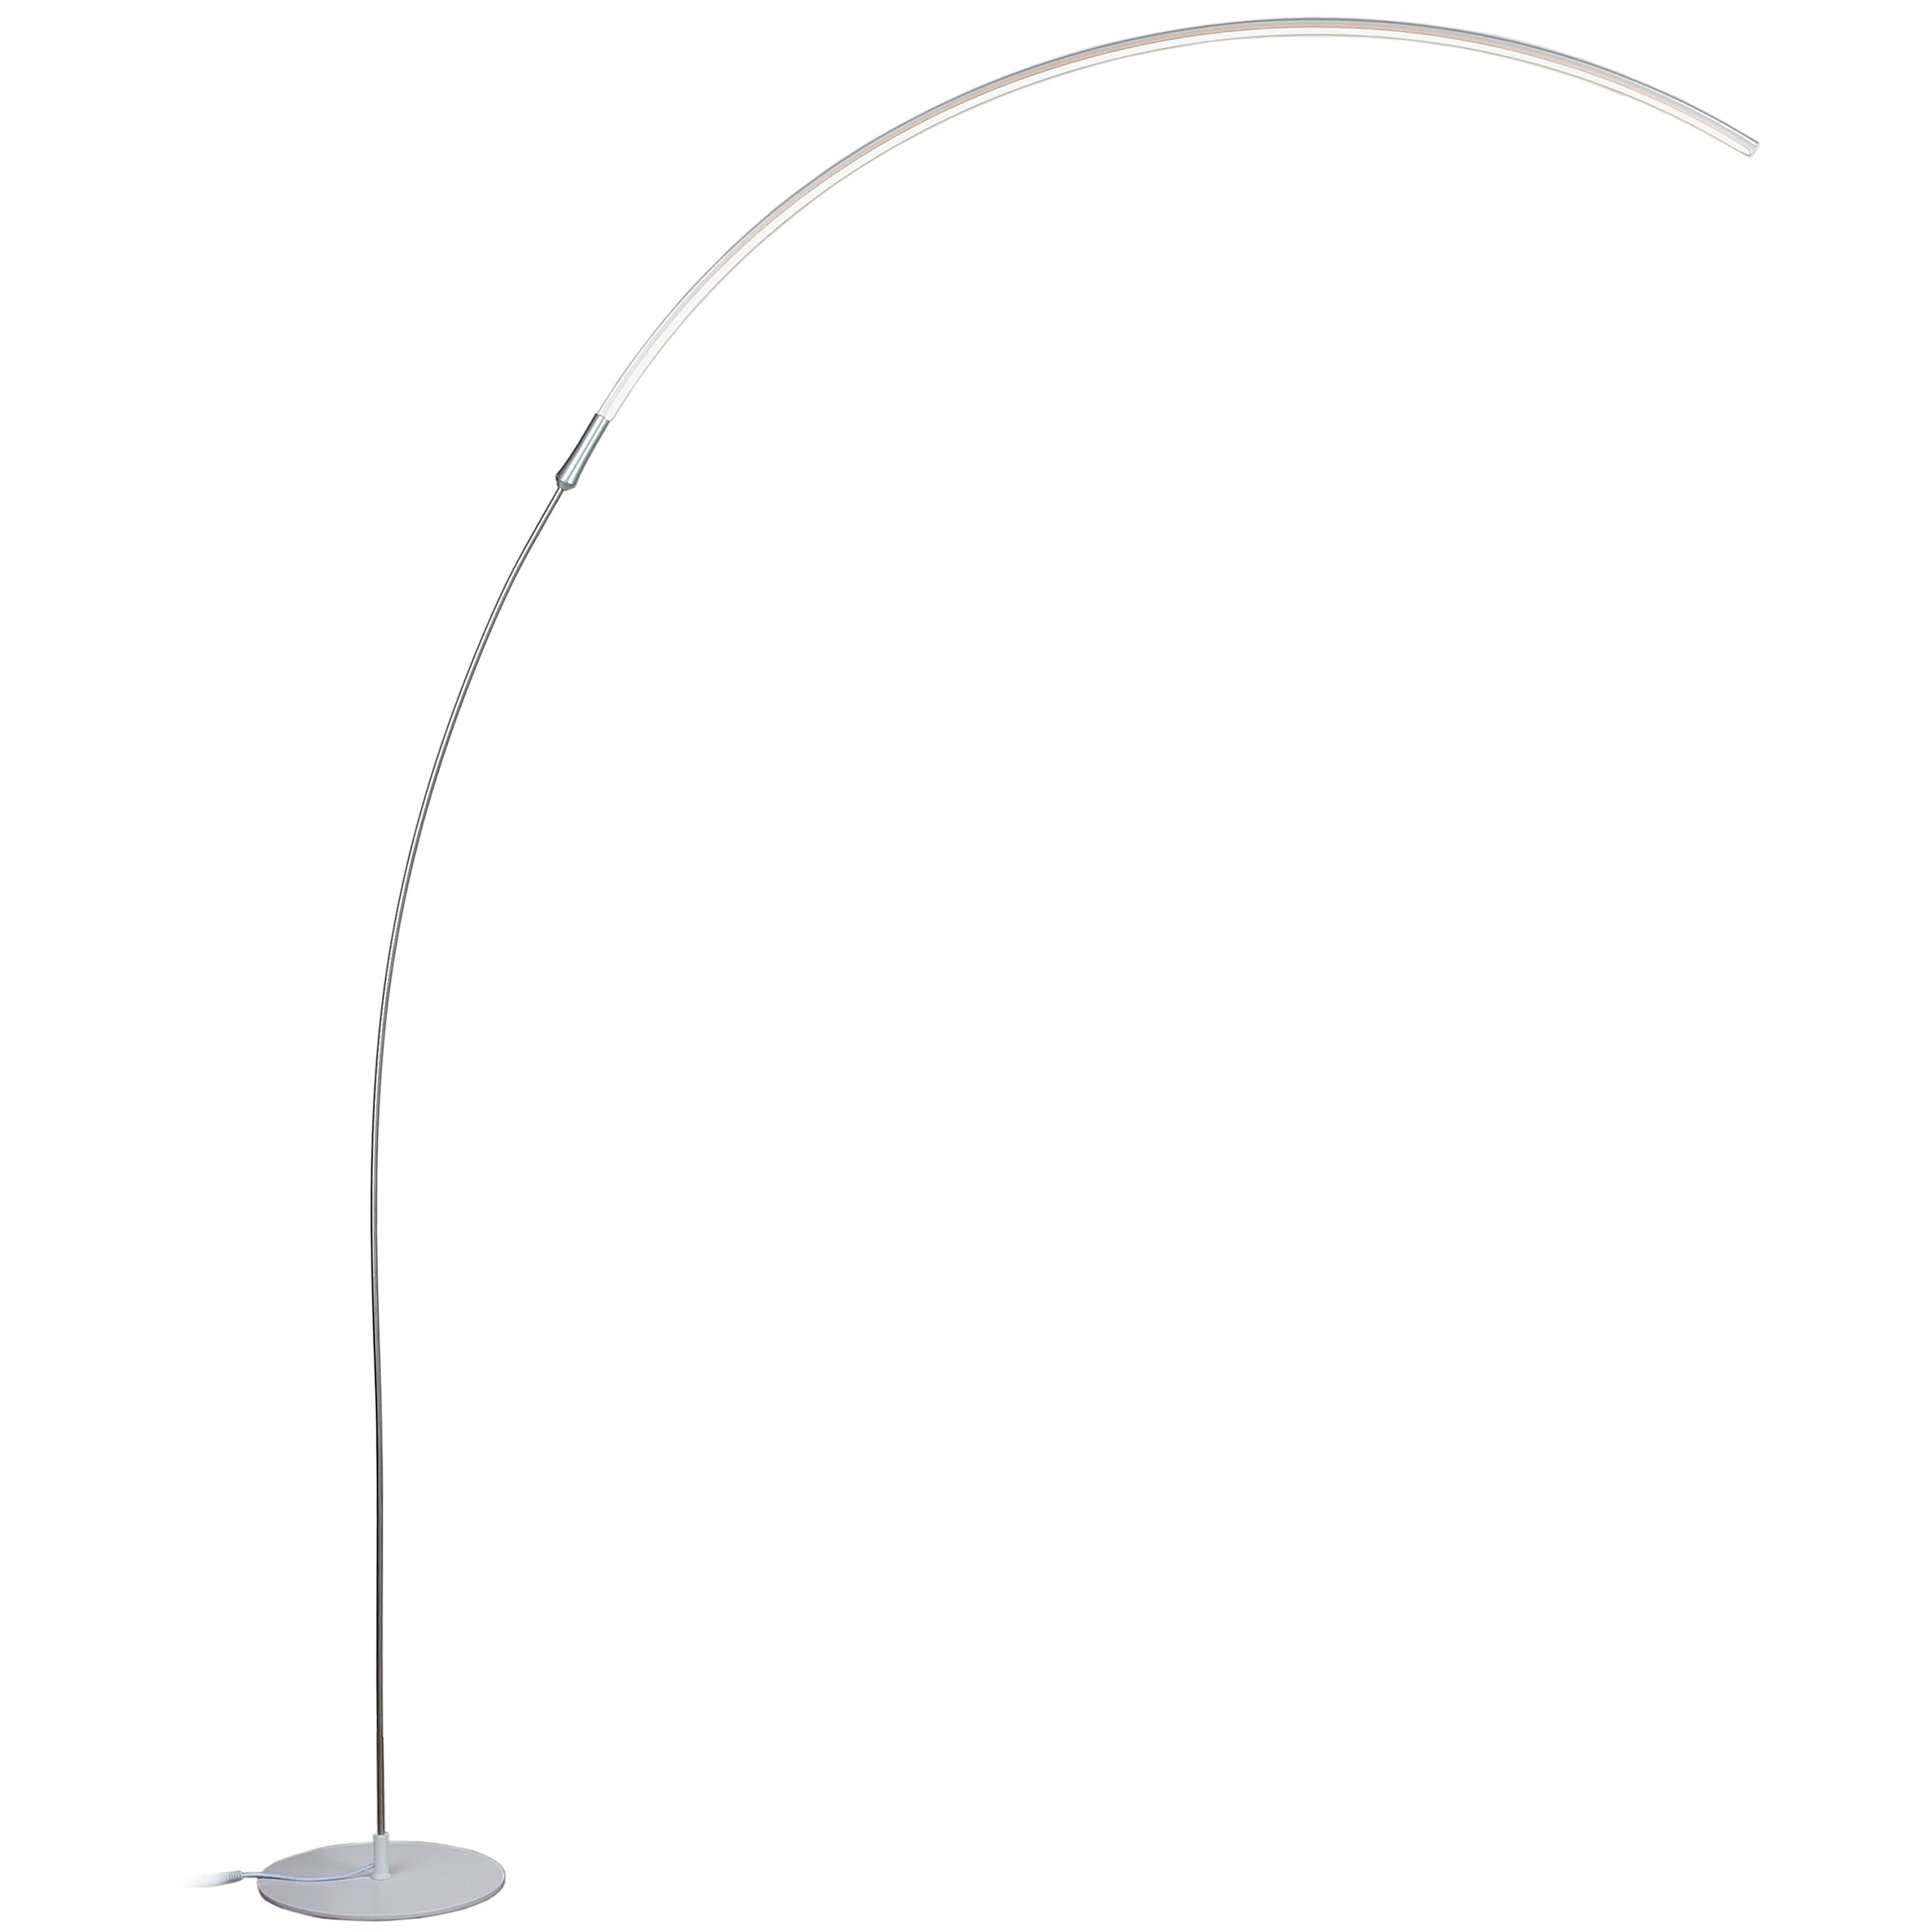 Brightech Sparq Arc LED Floor Lamp - Modern Over The Sofa Living Room Light - Warm White Arch Lighting for Bedrooms or Offices - Dimmable Minimalist Pole Downlight – Silver